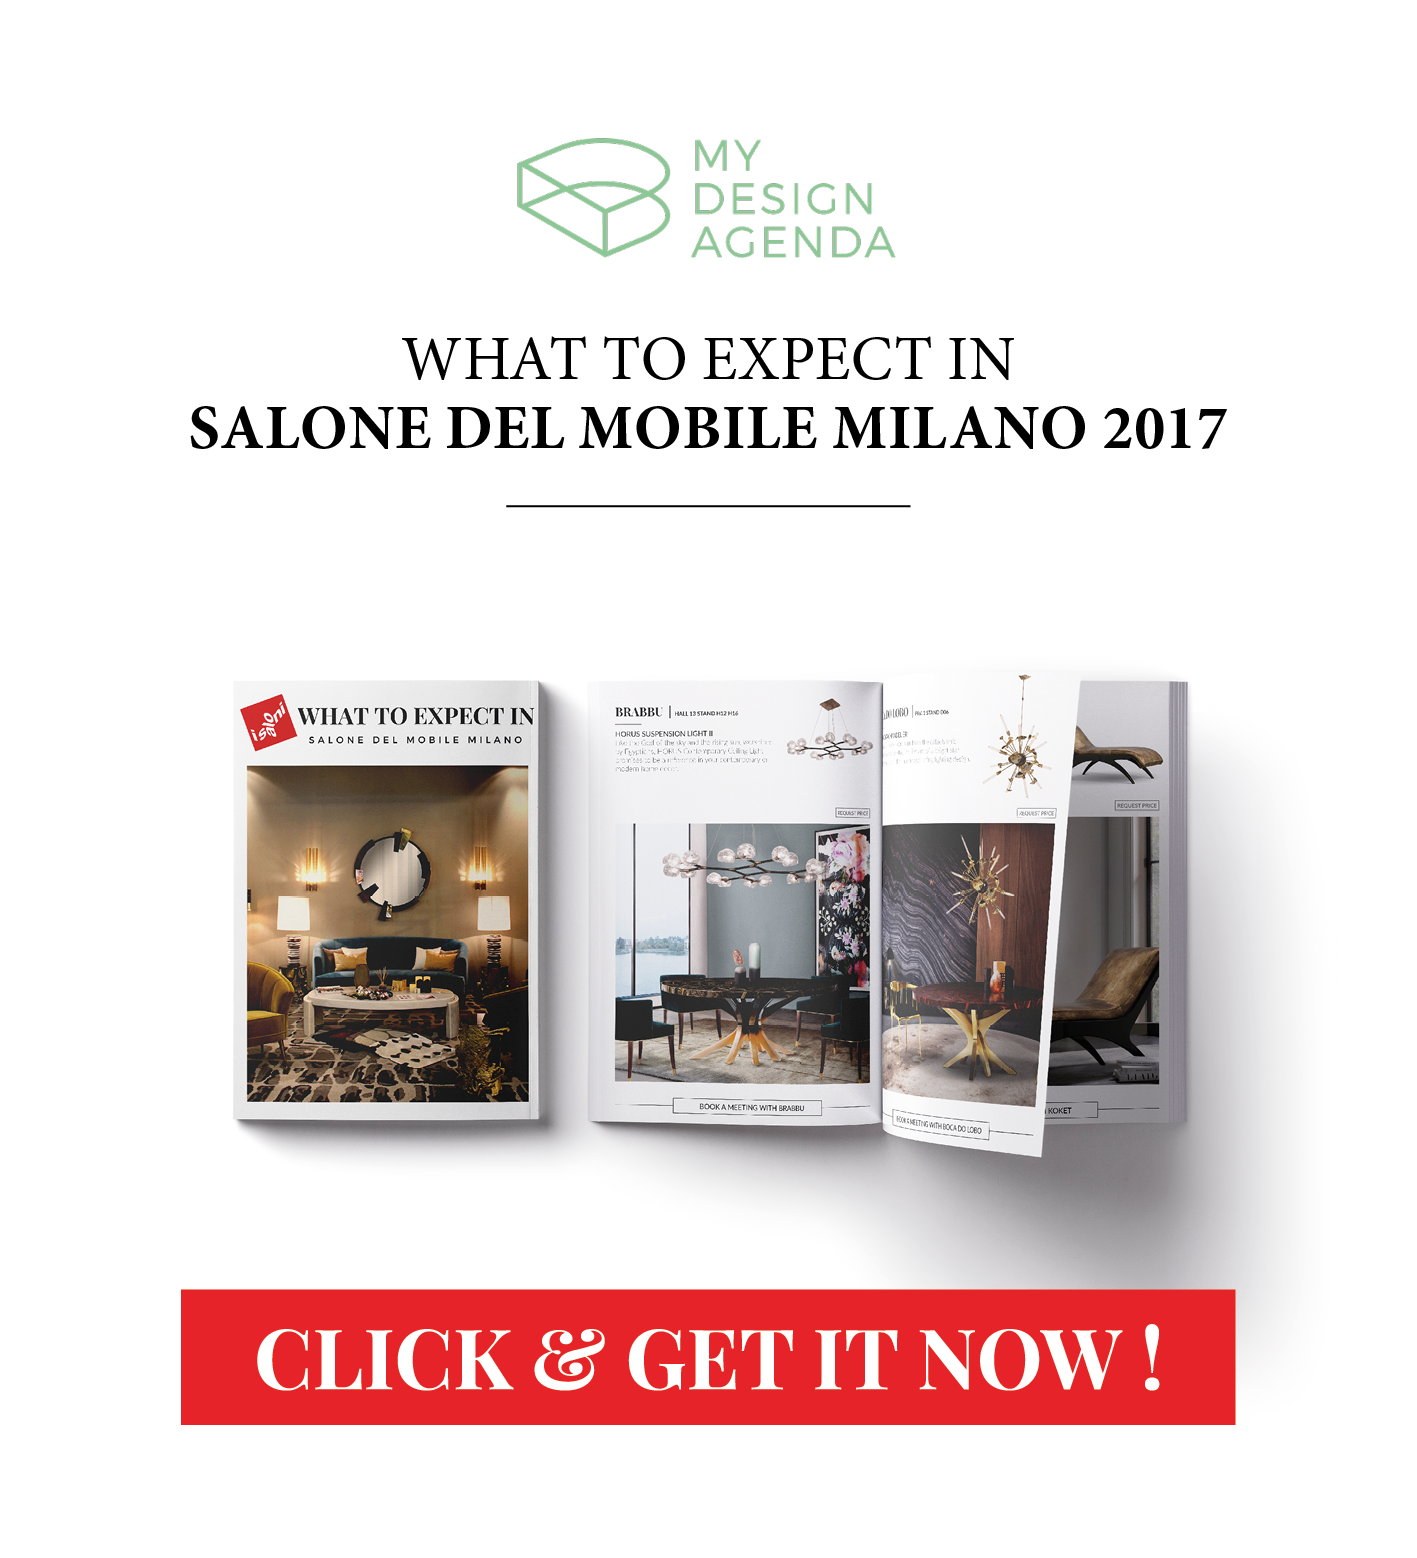 The best of salone del mobile milano 2017 - Salone del mobile 2017 date ...